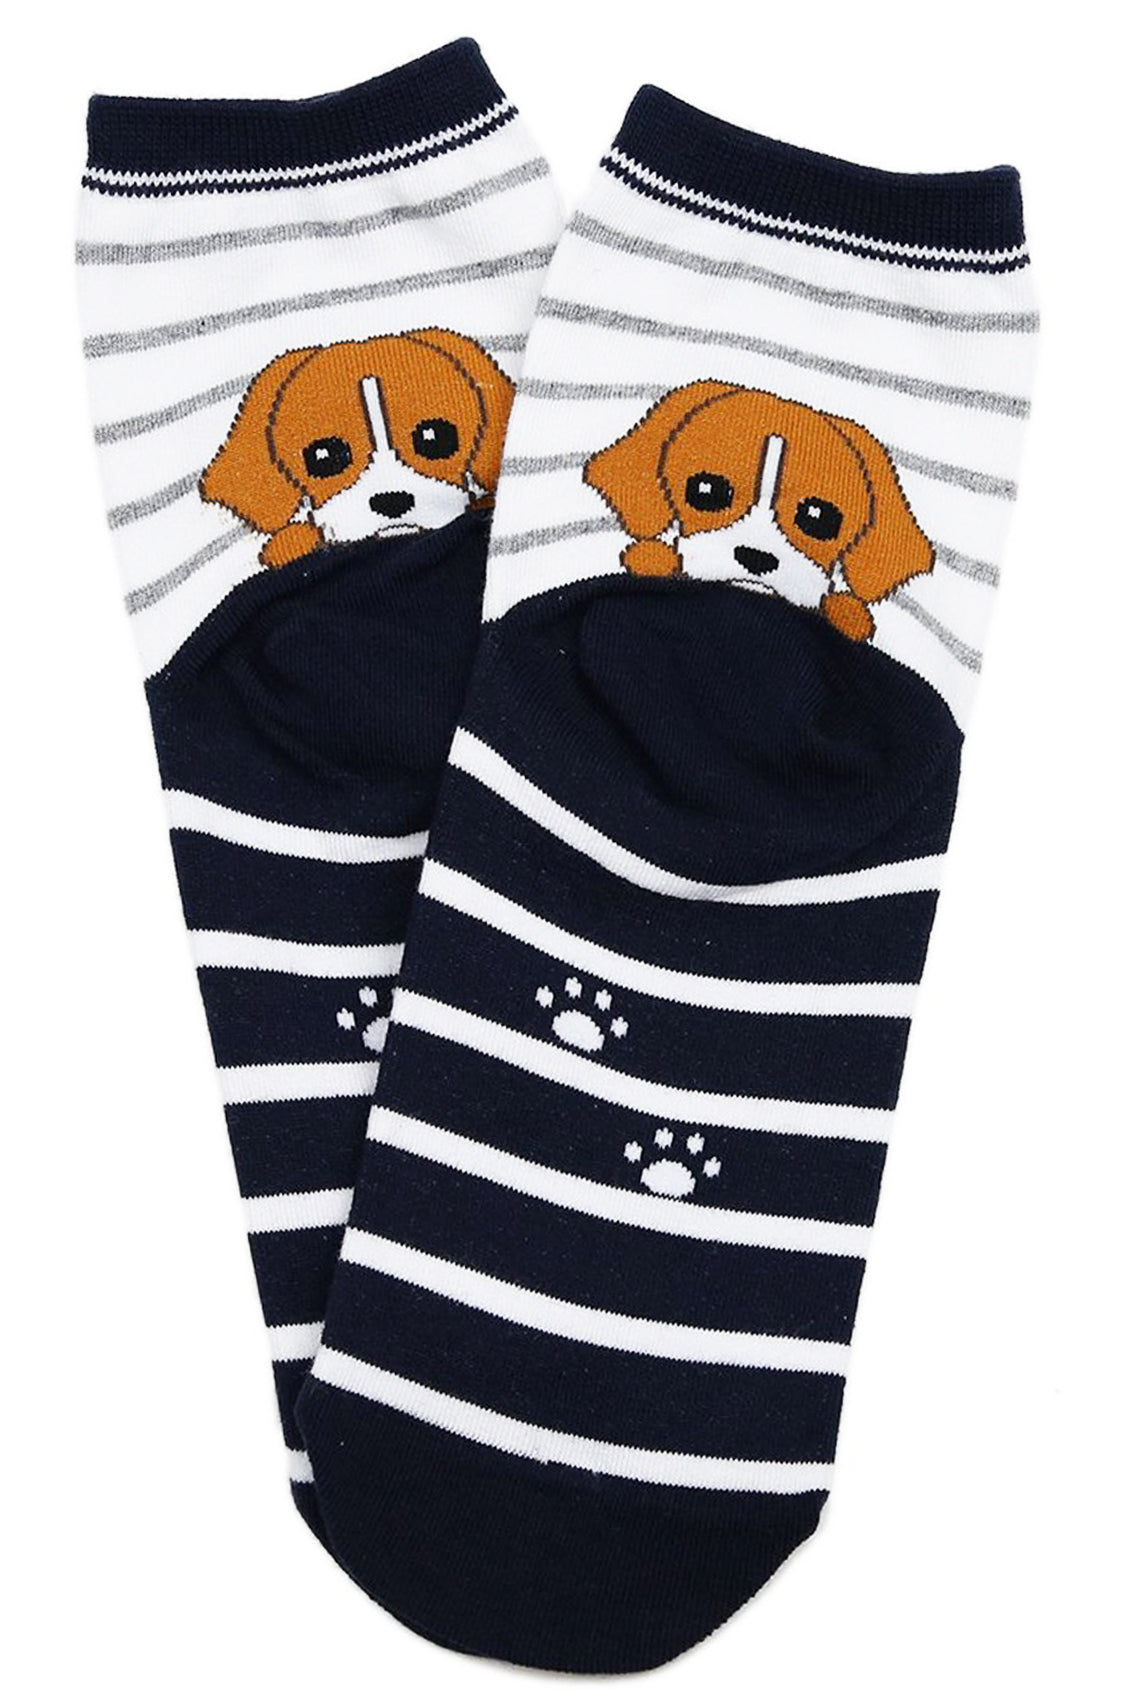 Peek a Boo Puppy Cotton Socks Navy